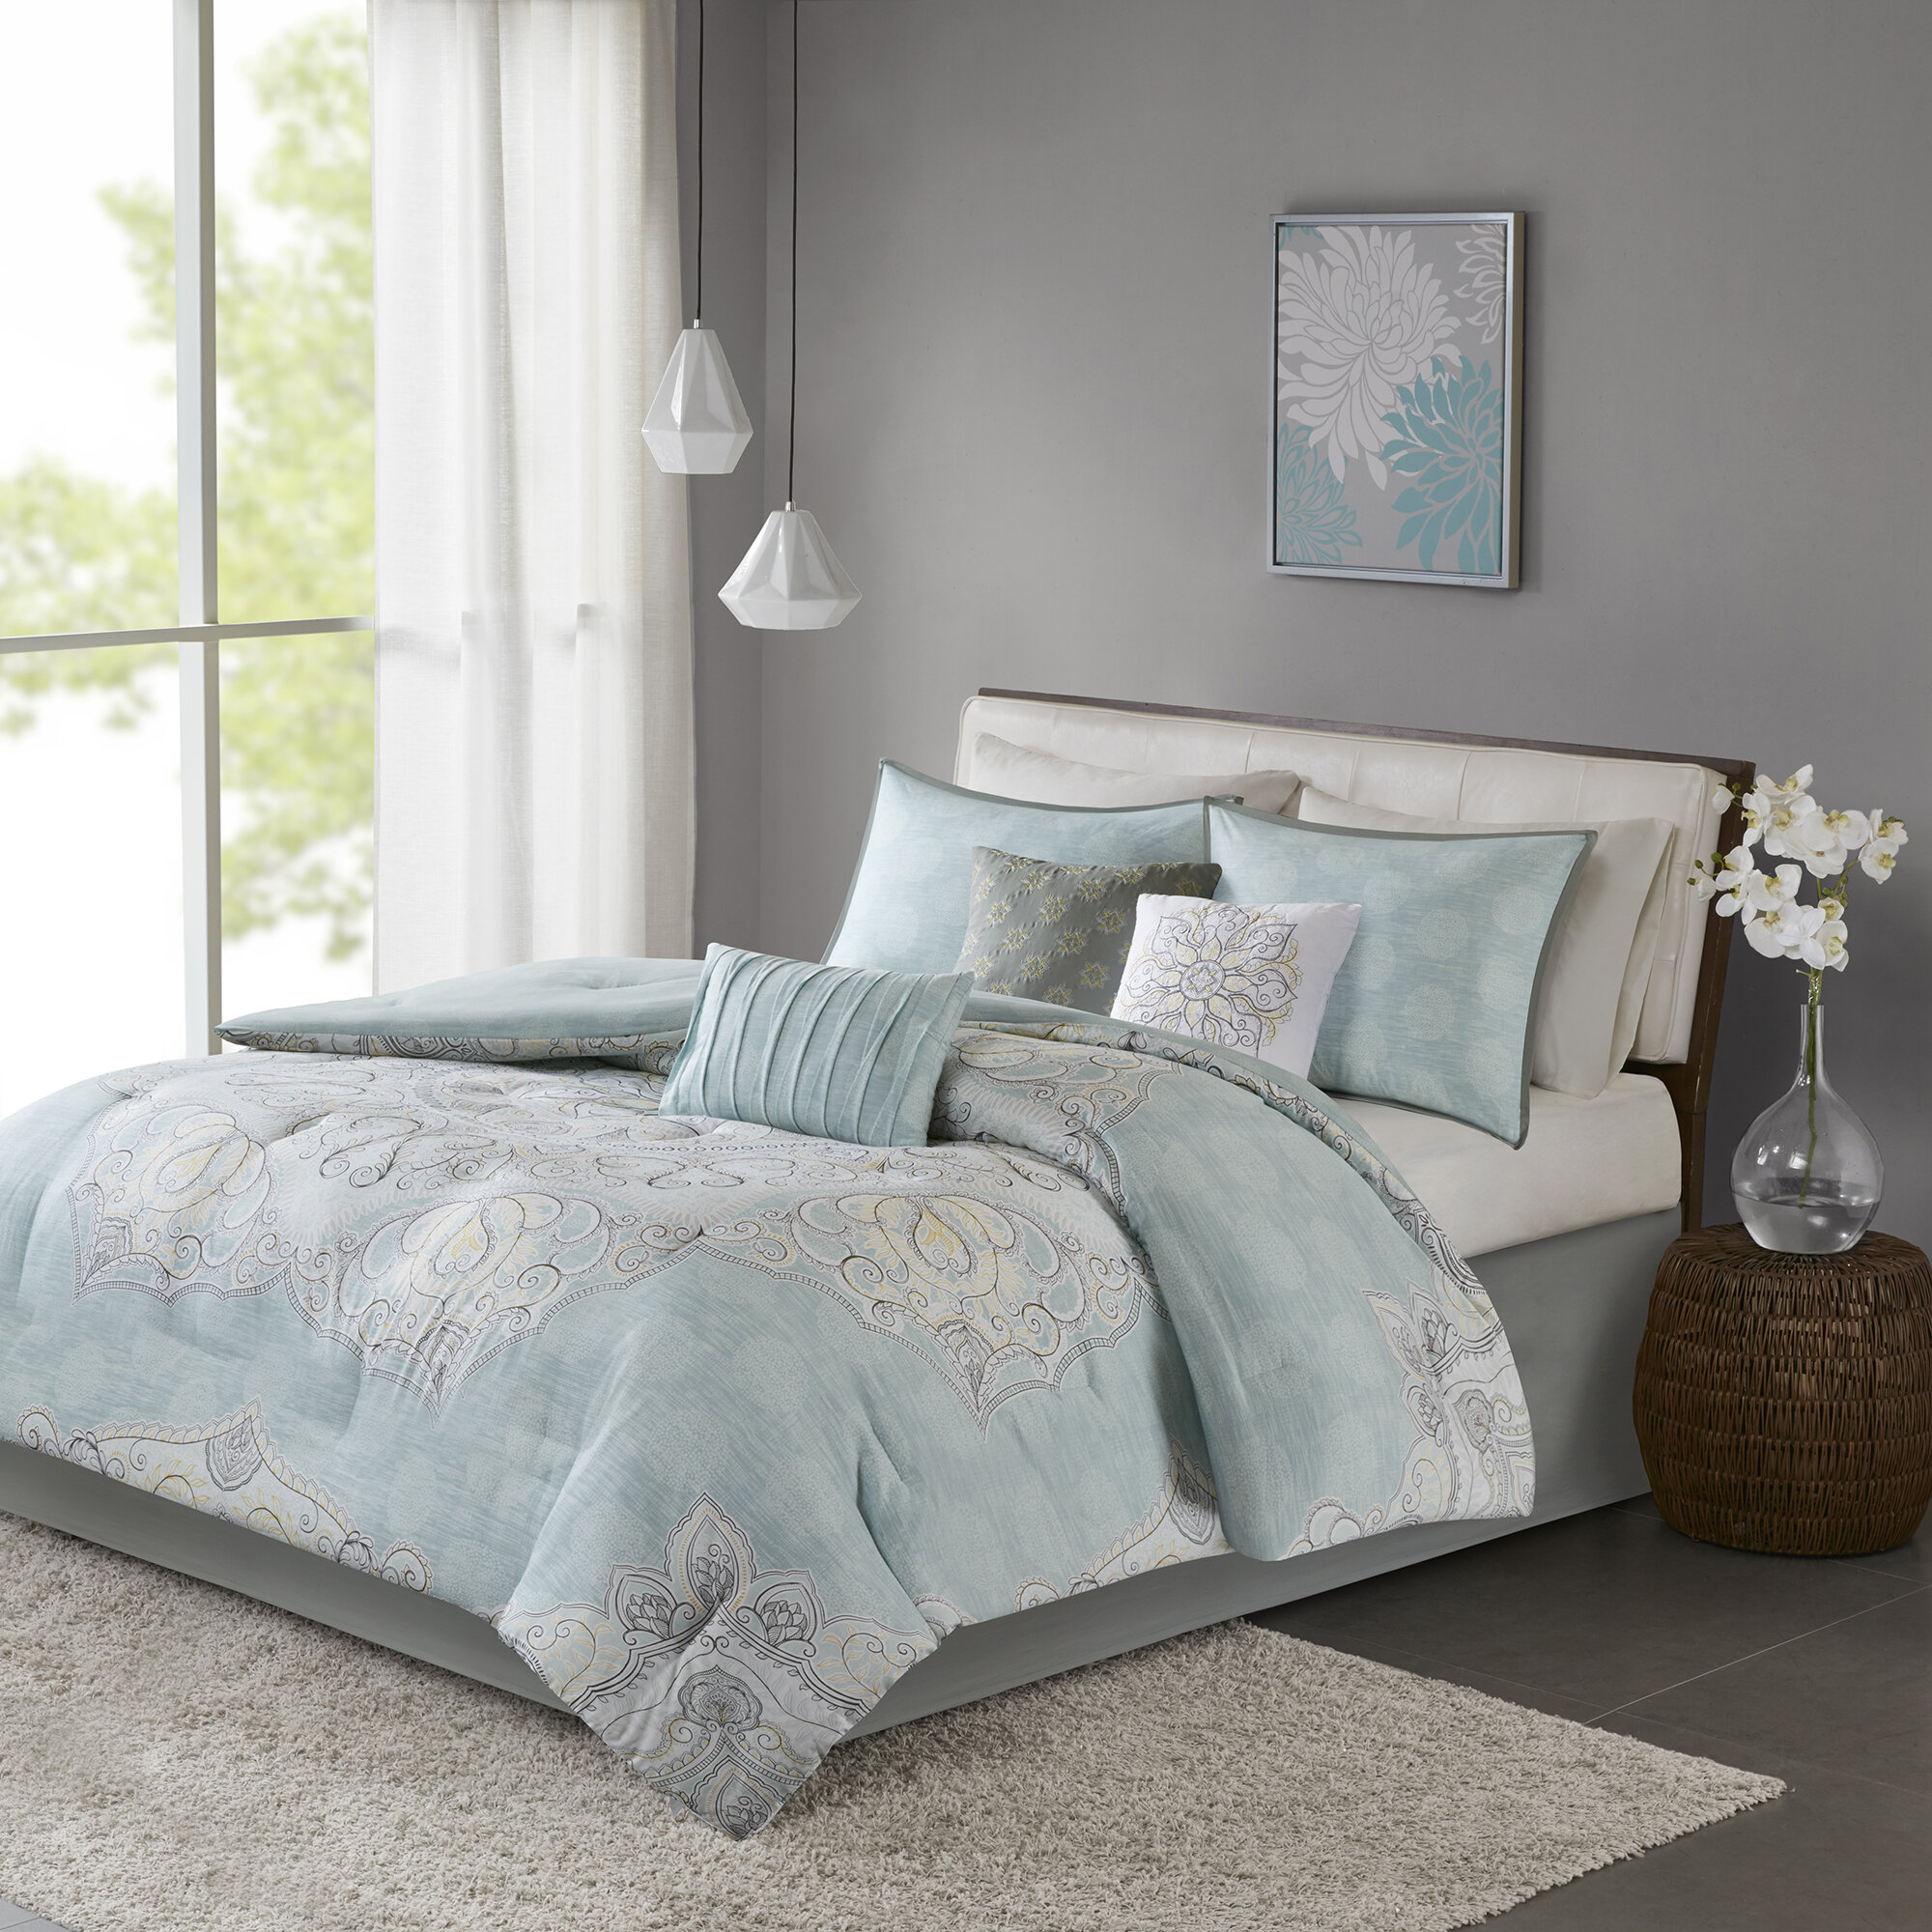 sateen set product sterling hayneedle comforter inuse by cfm echo